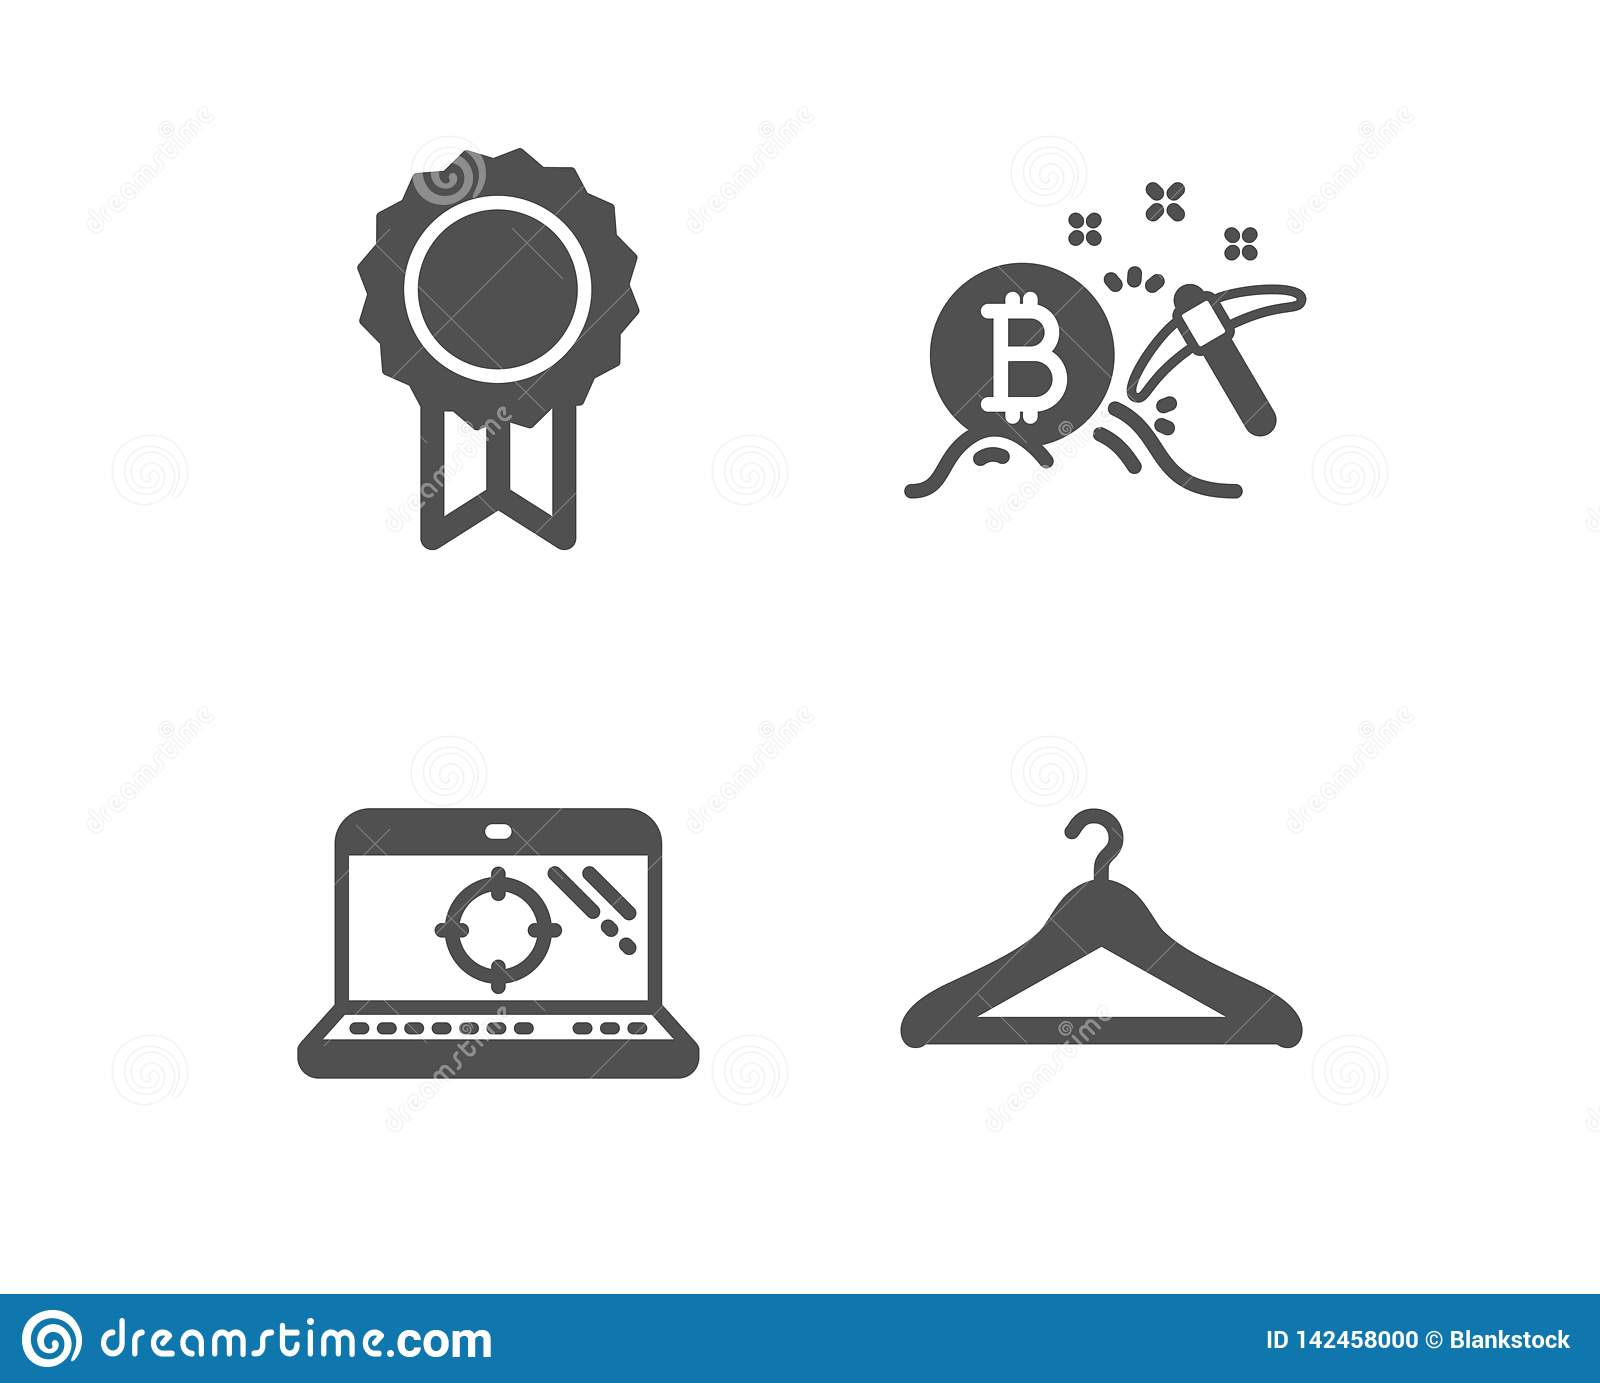 cryptocurrency search engine